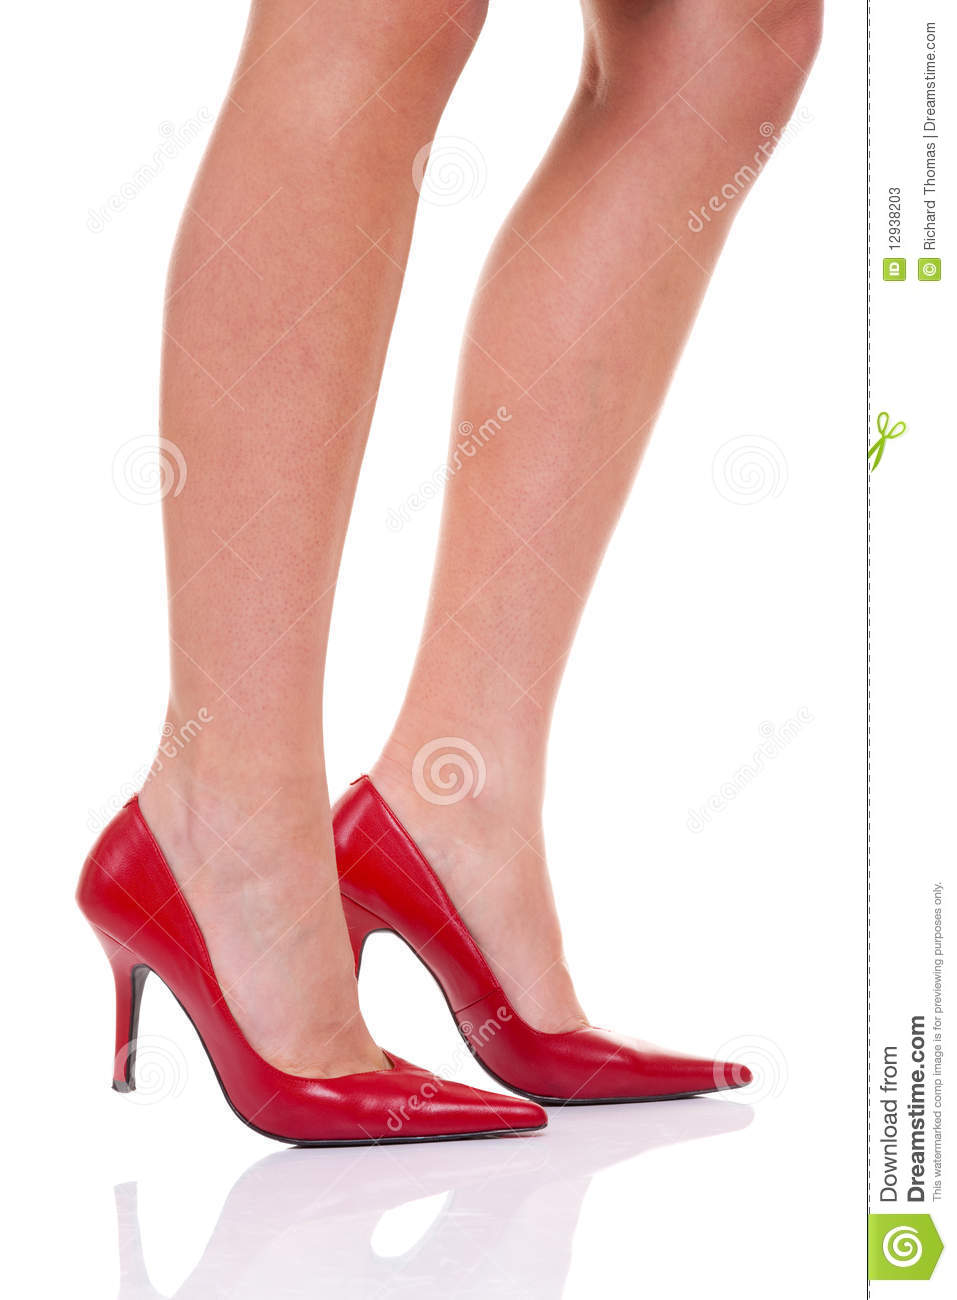 womans legs with red high heeled shoes, isolated on a white